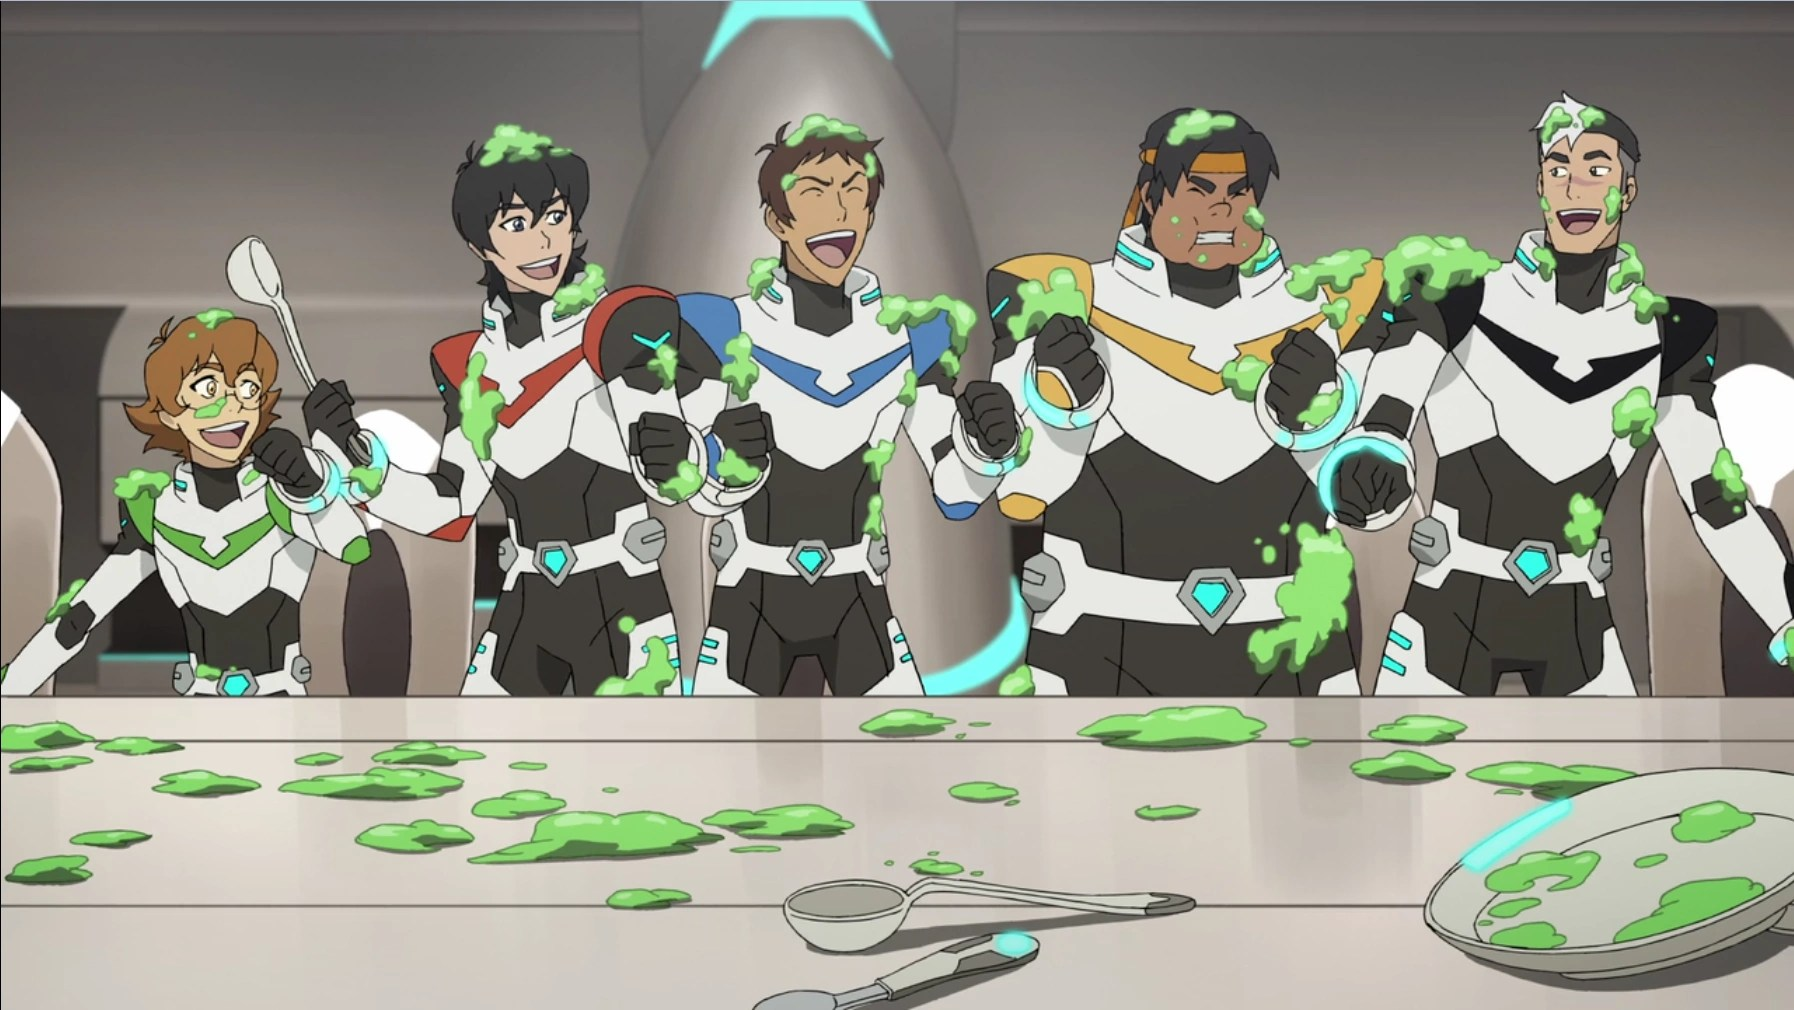 Cute Live Wallpaper Download Image 75 Team Voltron Covered In Food Goo Png Voltron